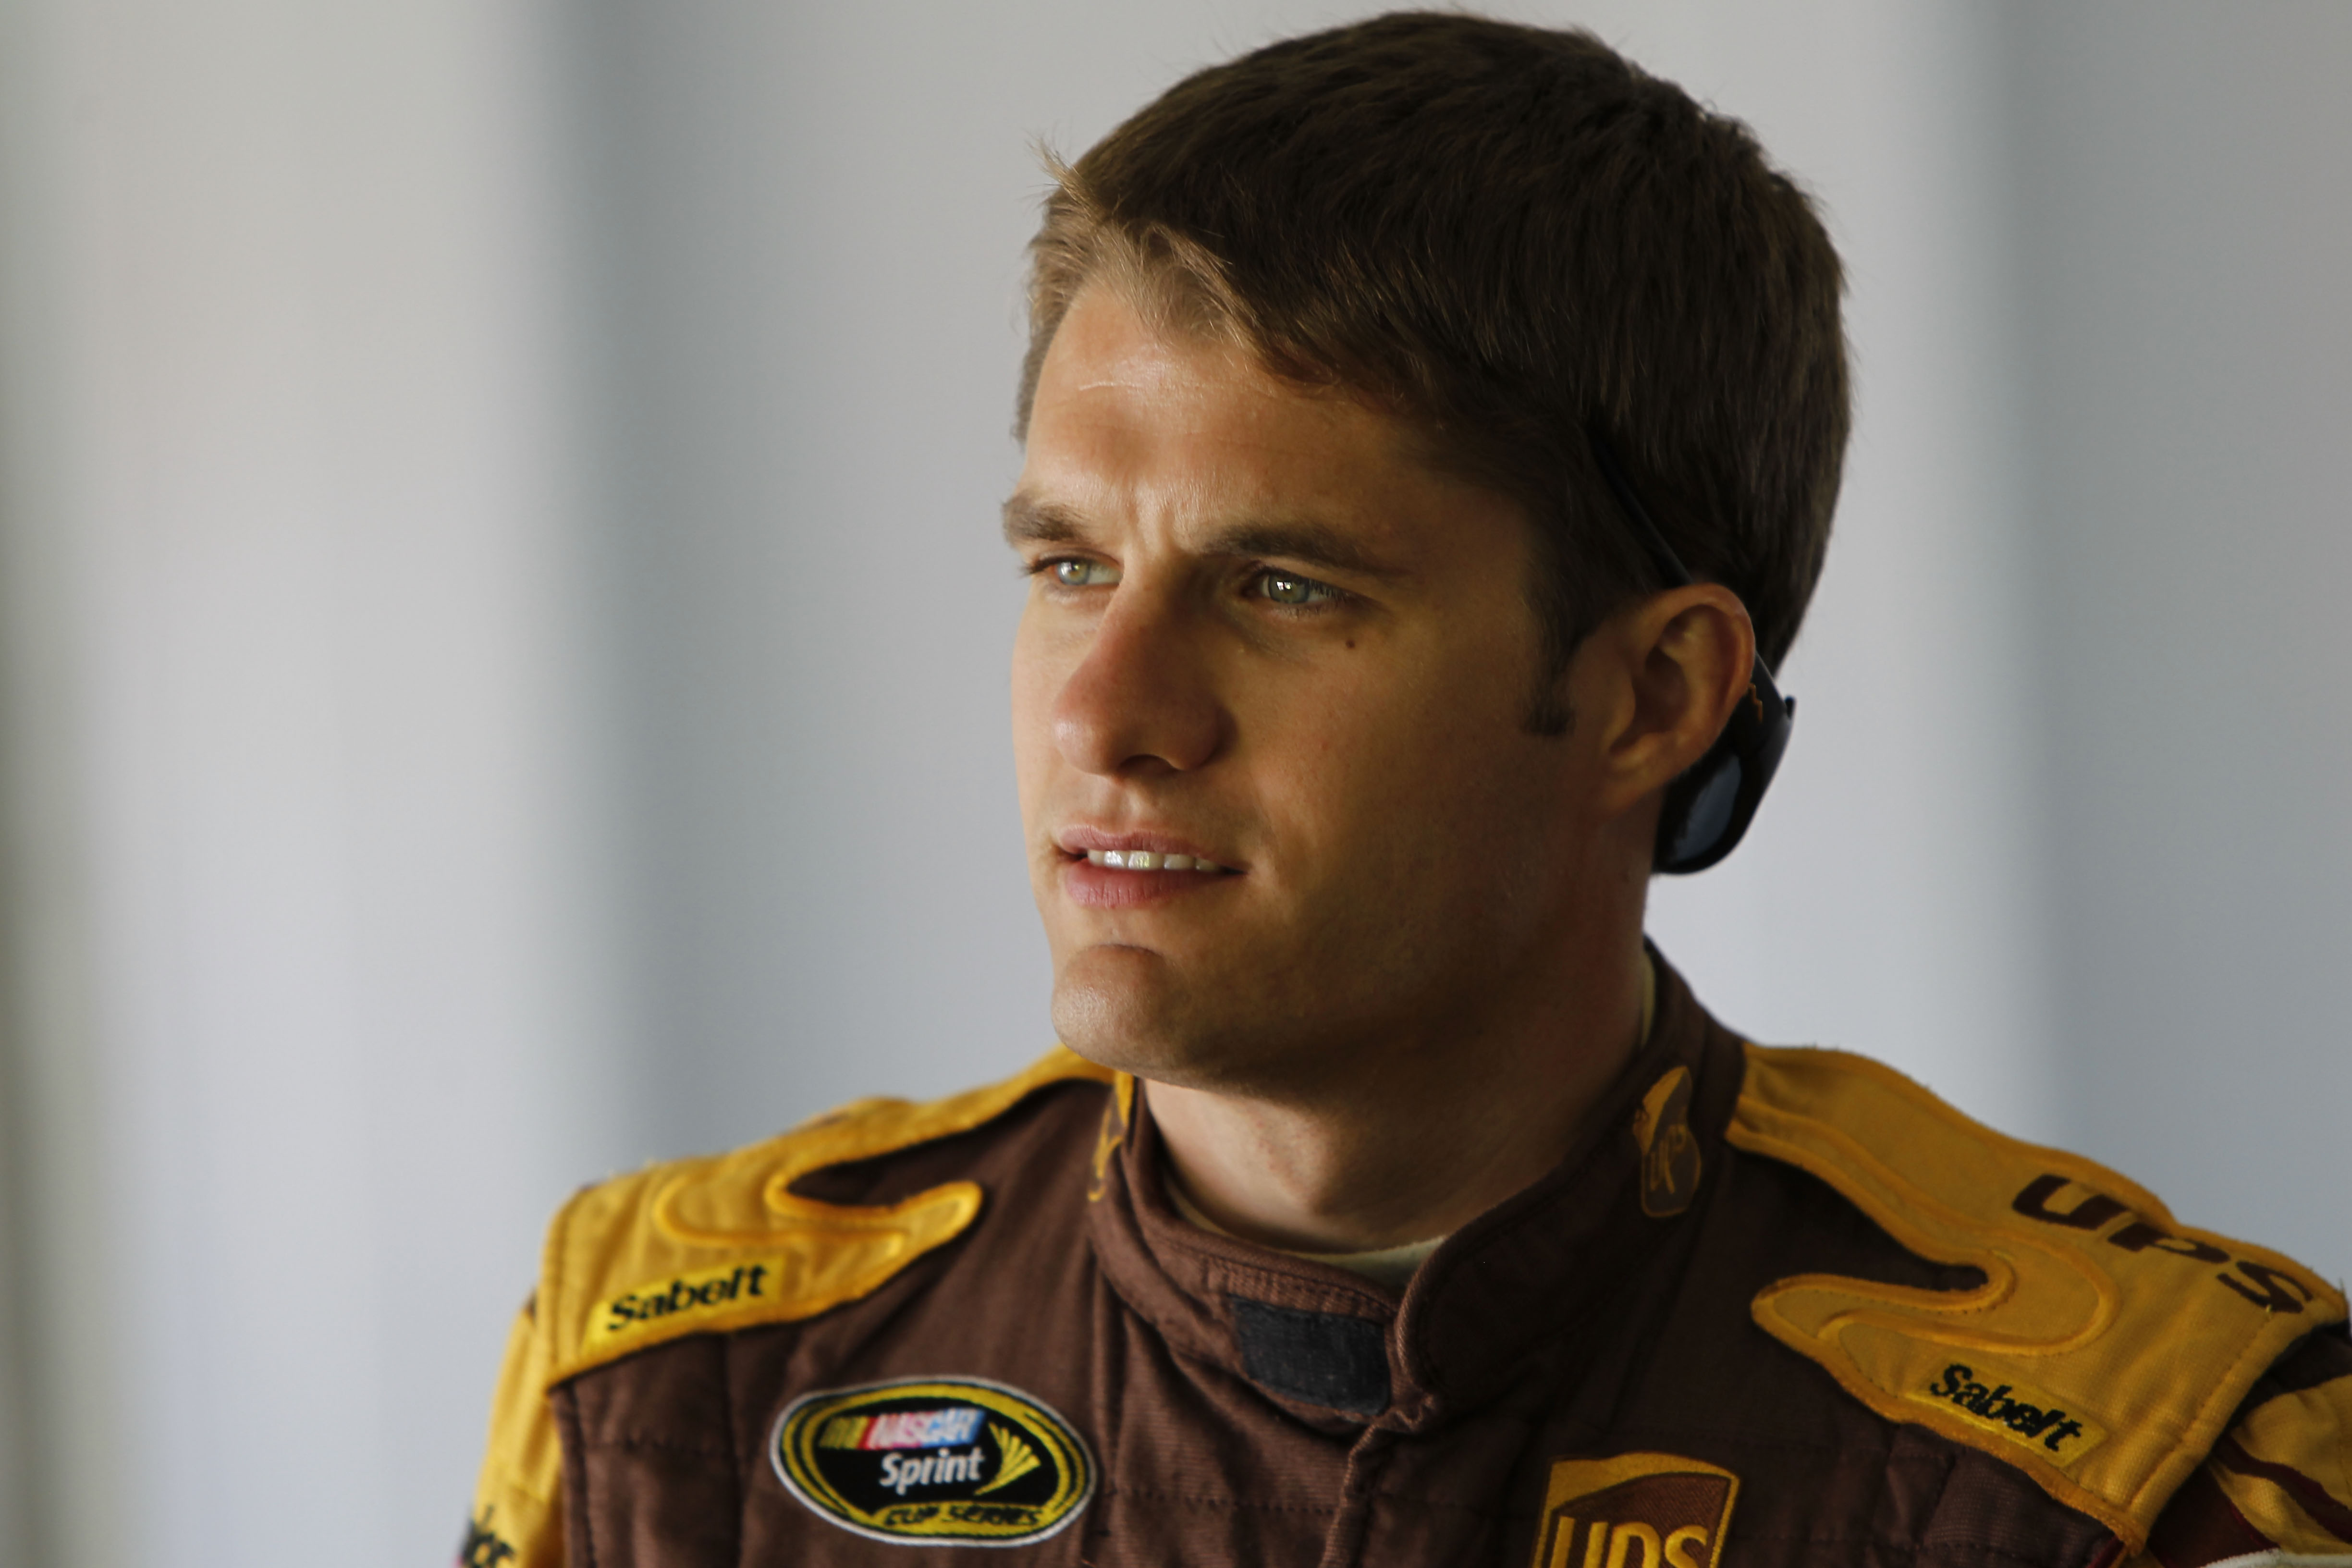 HOMESTEAD, FL - NOVEMBER 20:  David Ragan, driver of the #6 UPS Ford, walks in the garage during practice for the NASCAR Sprint Cup Series Ford 400 at Homestead-Miami Speedway on November 20, 2010 in Homestead, Florida.  (Photo by Chris Trotman/Getty Imag